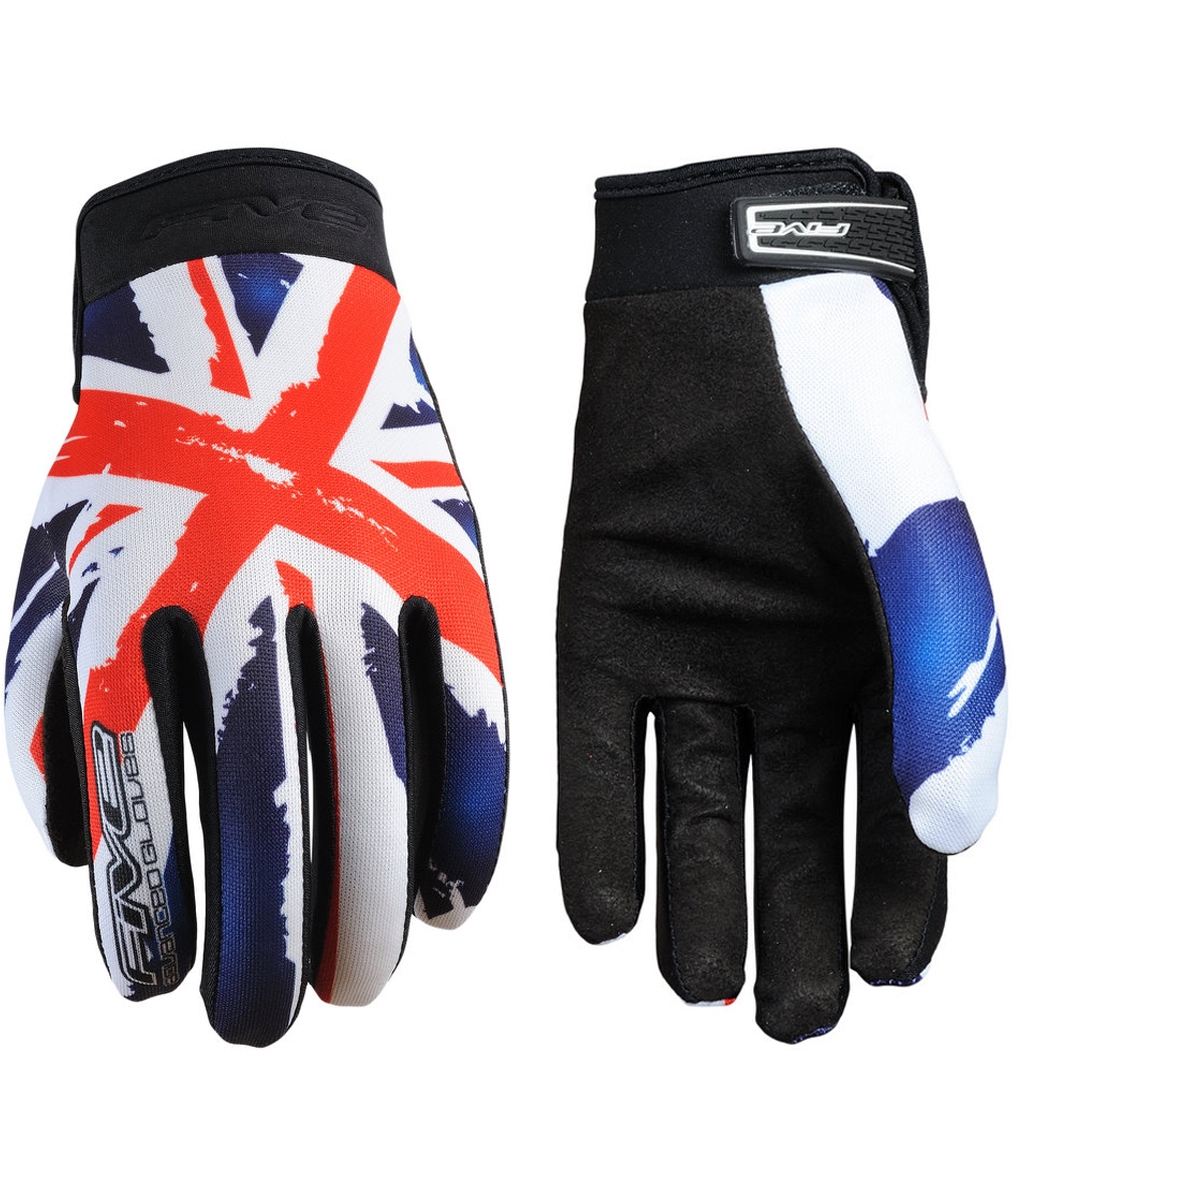 Gants Five Planet Patriot Angleterre - L